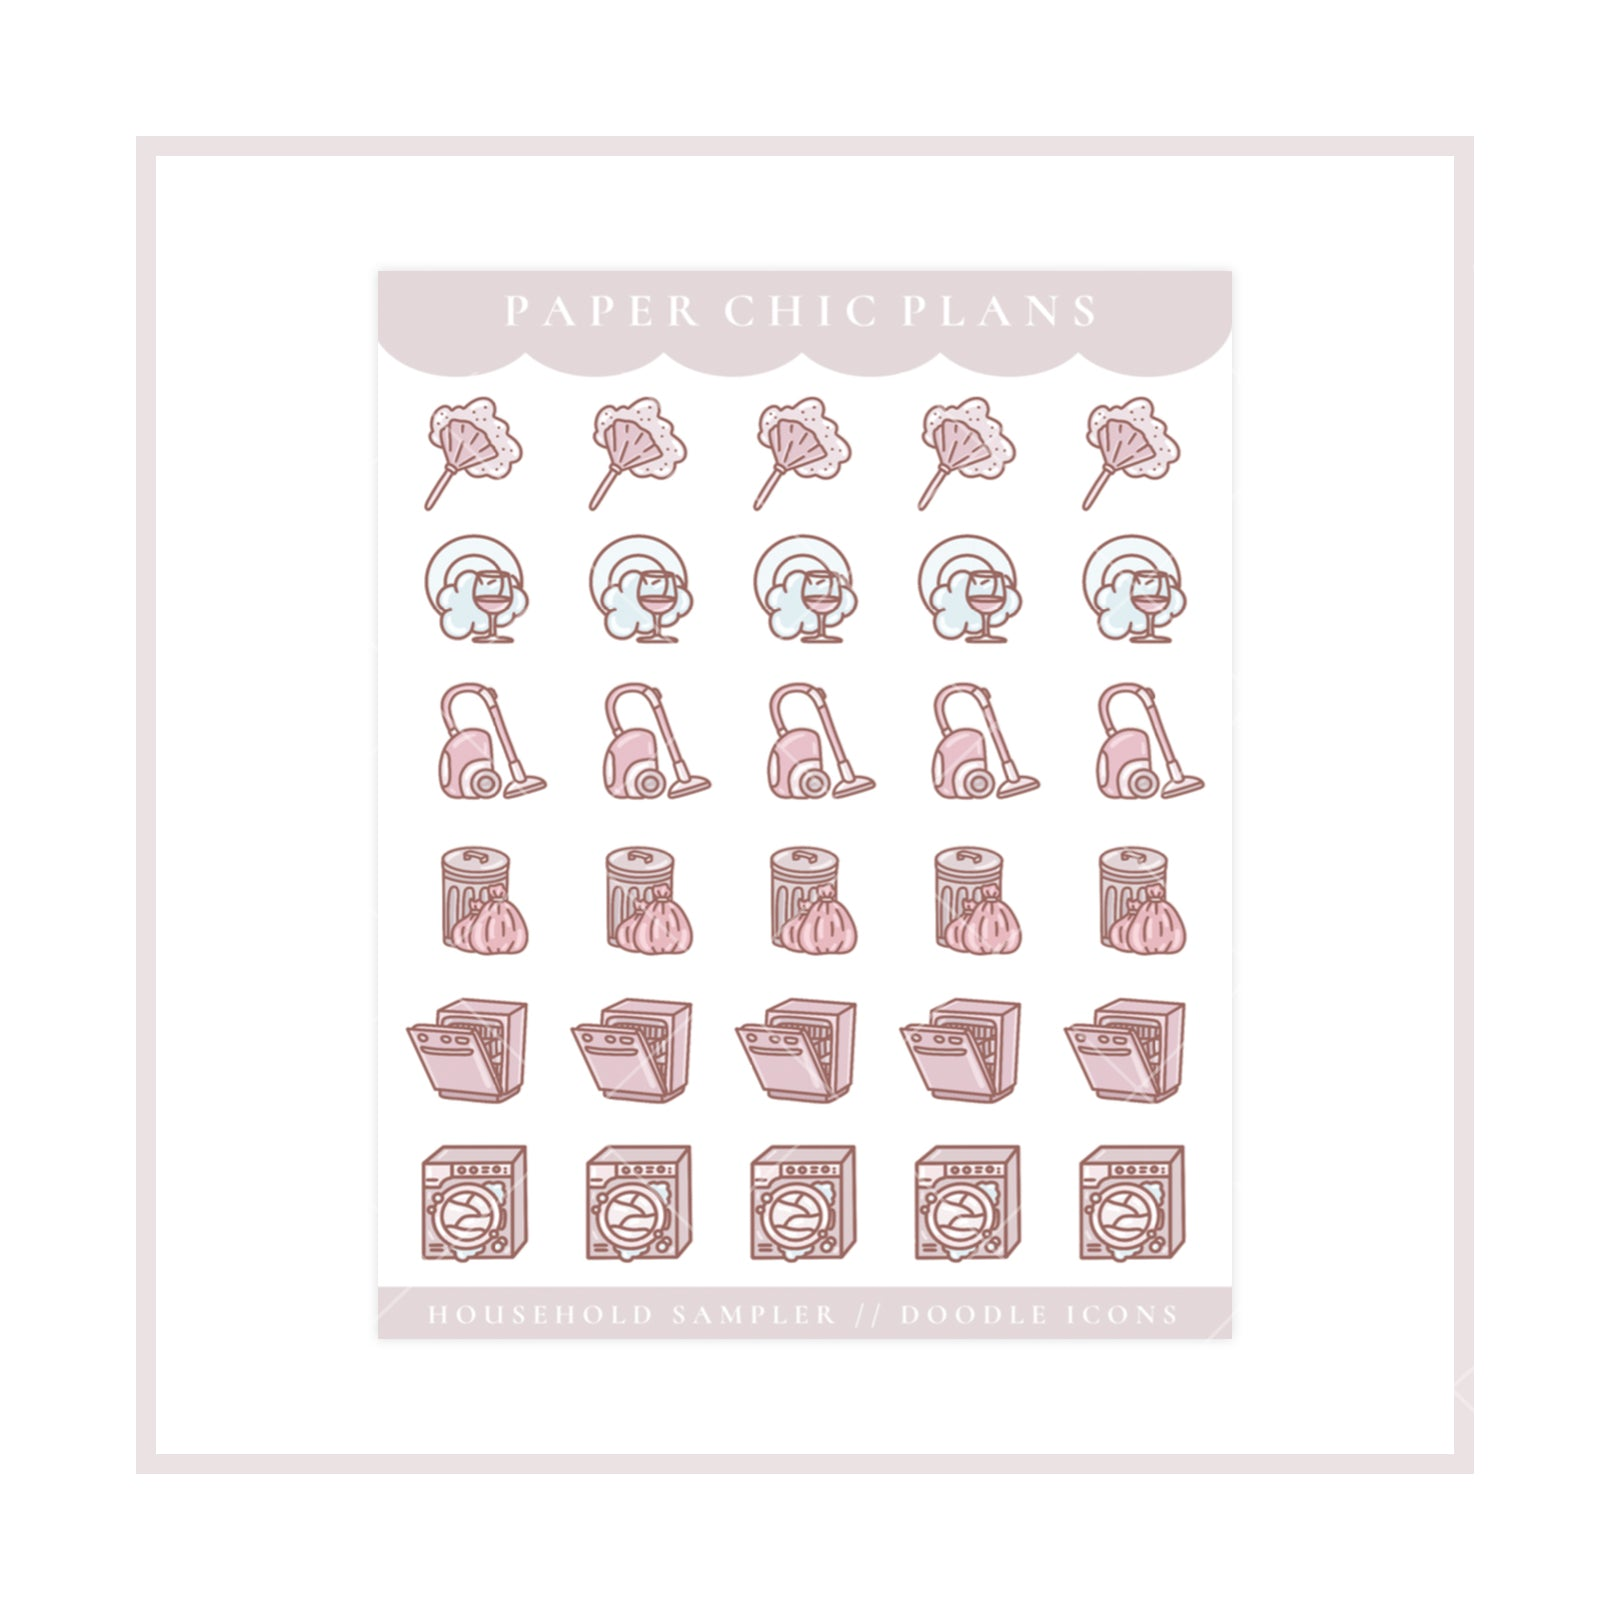 Household // Doodle Icon Sampler